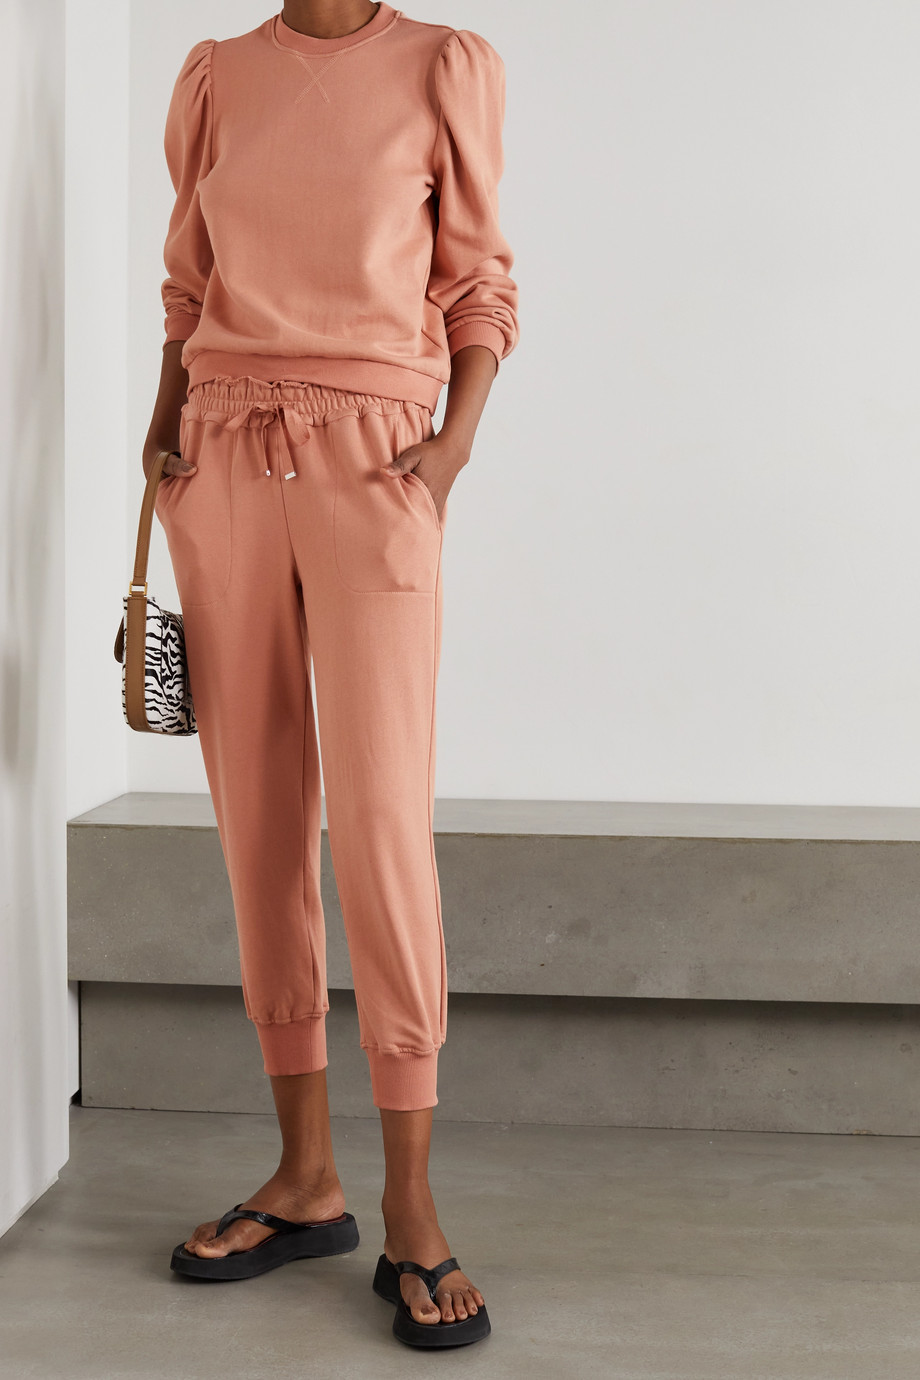 Cami NYC Lynley French cotton-terry track pants